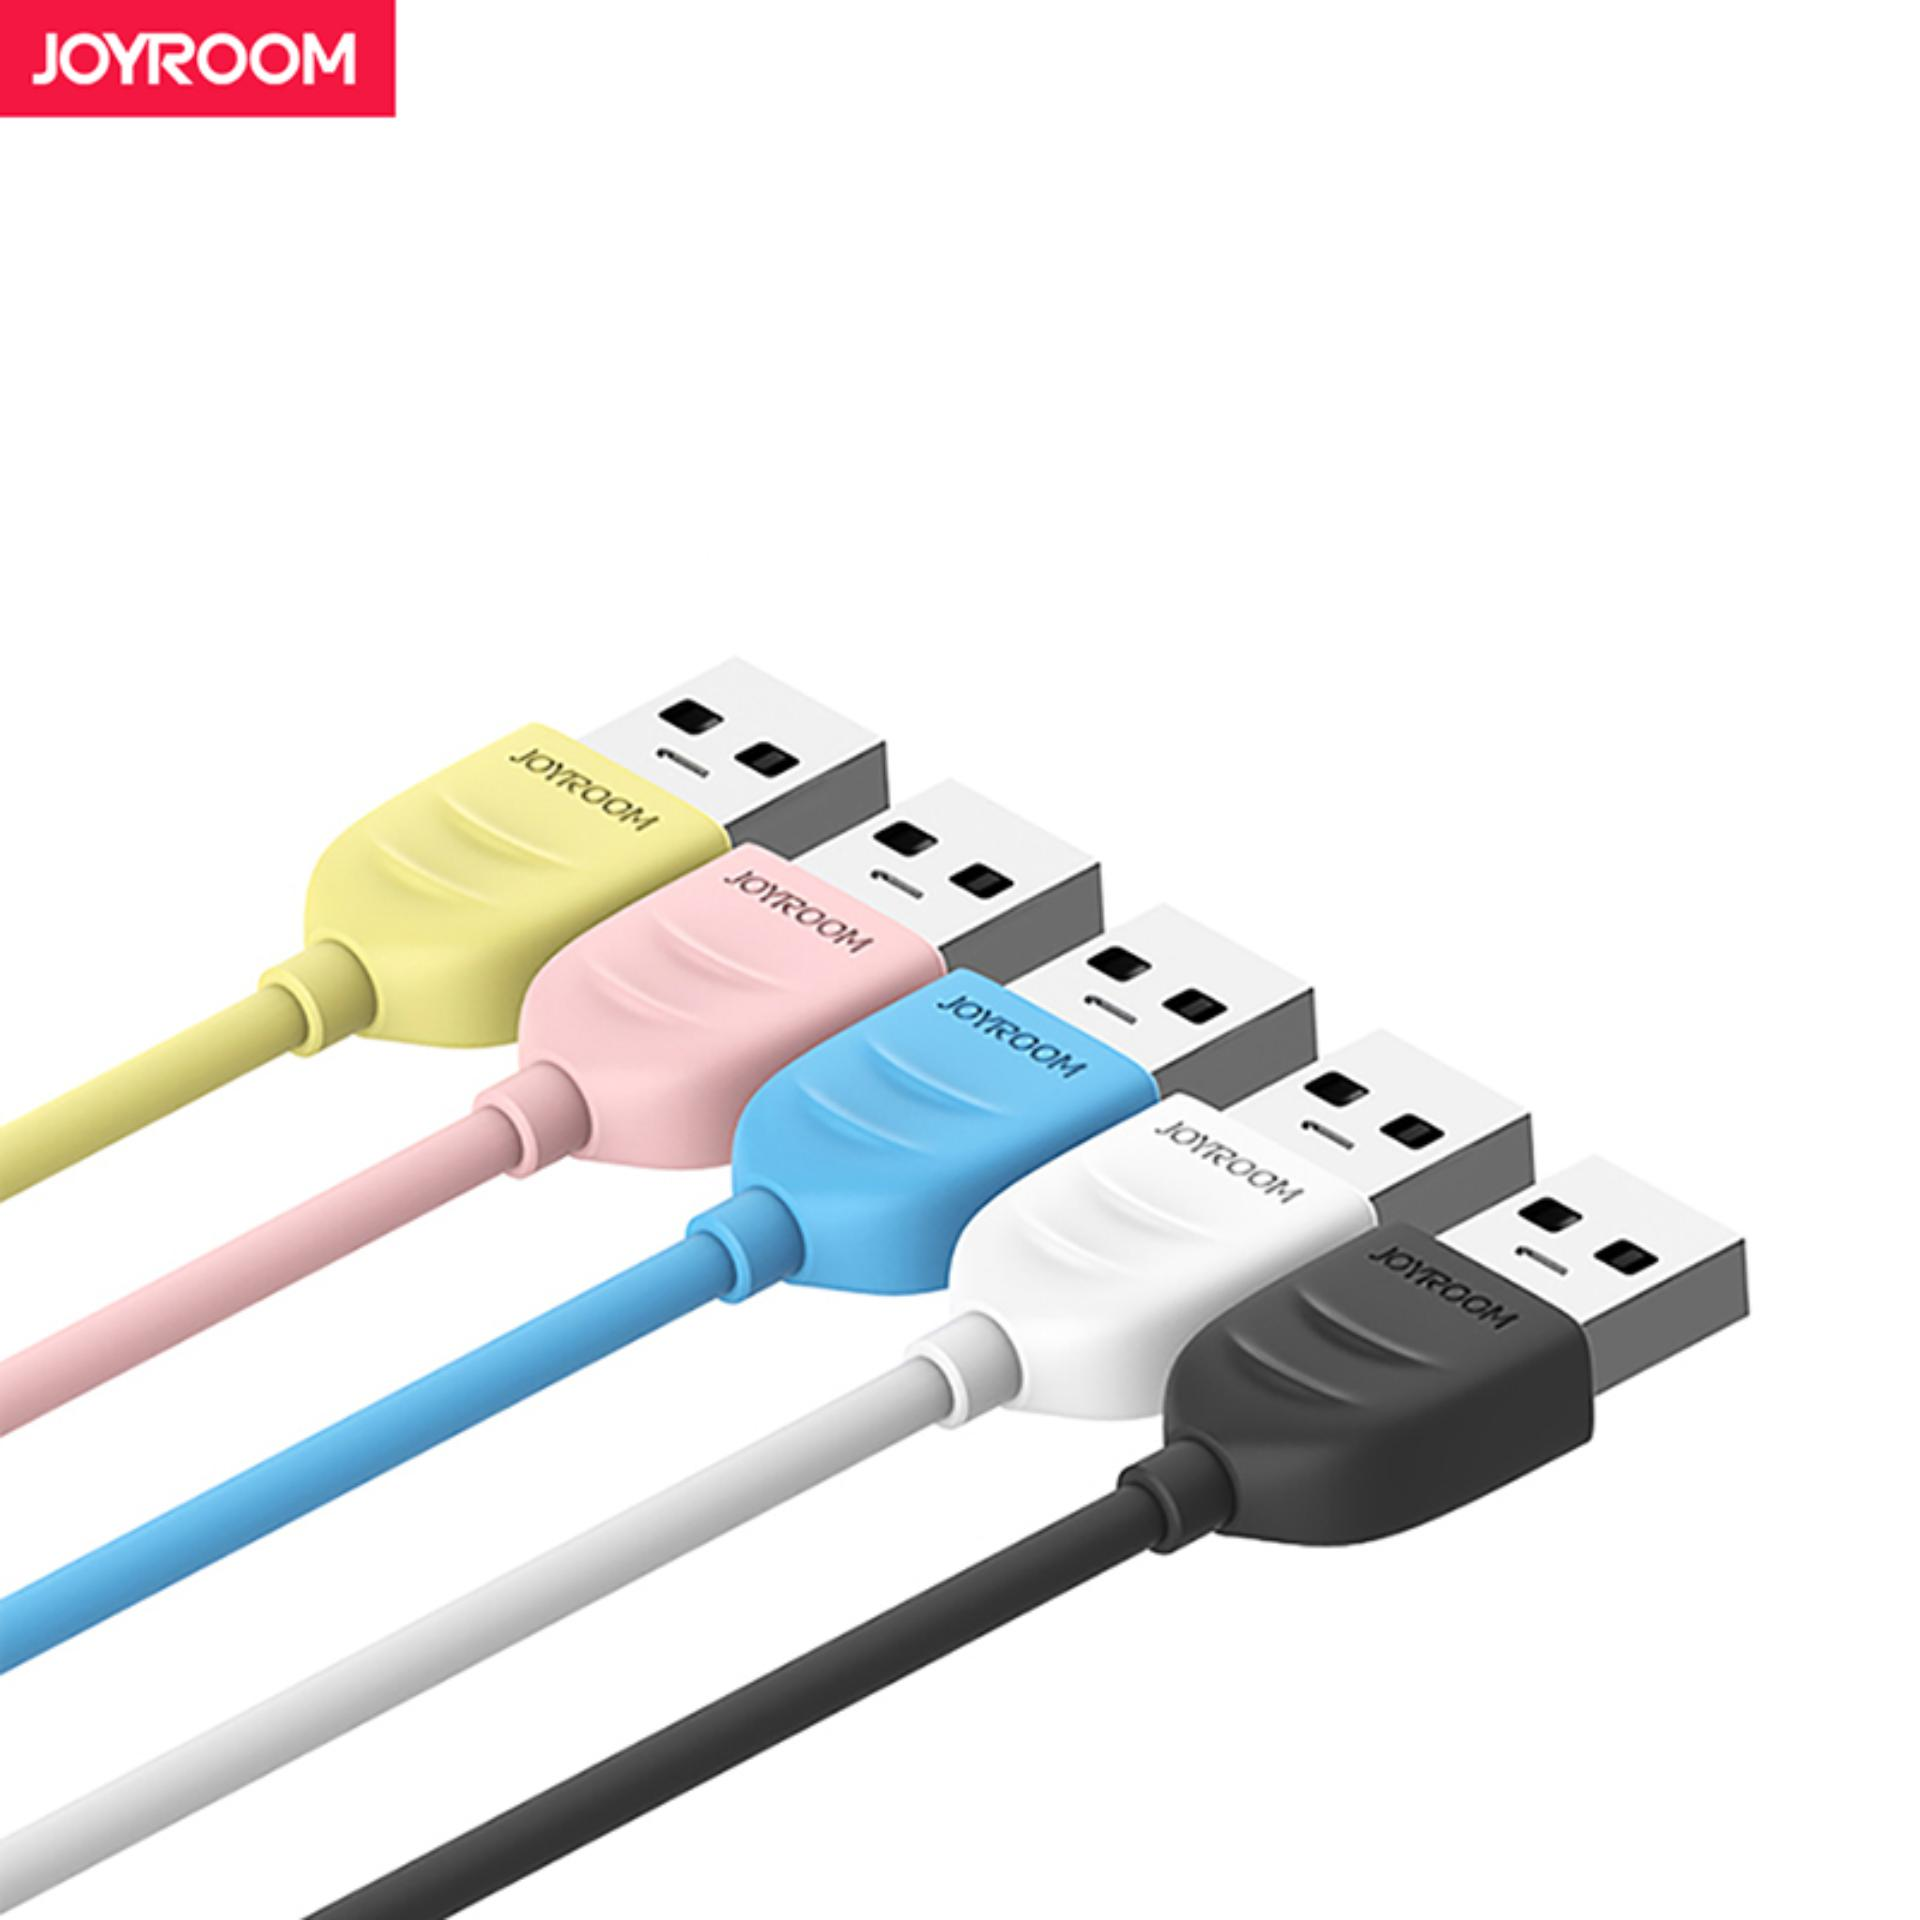 Joyroom Micro USB Cable For Xiaomi Samsung Fast Charge USB Data Cable 100cm Android Micro usb Charging Cable Mobile Phone Cables - Joyroom Micro USB Kabel S-116